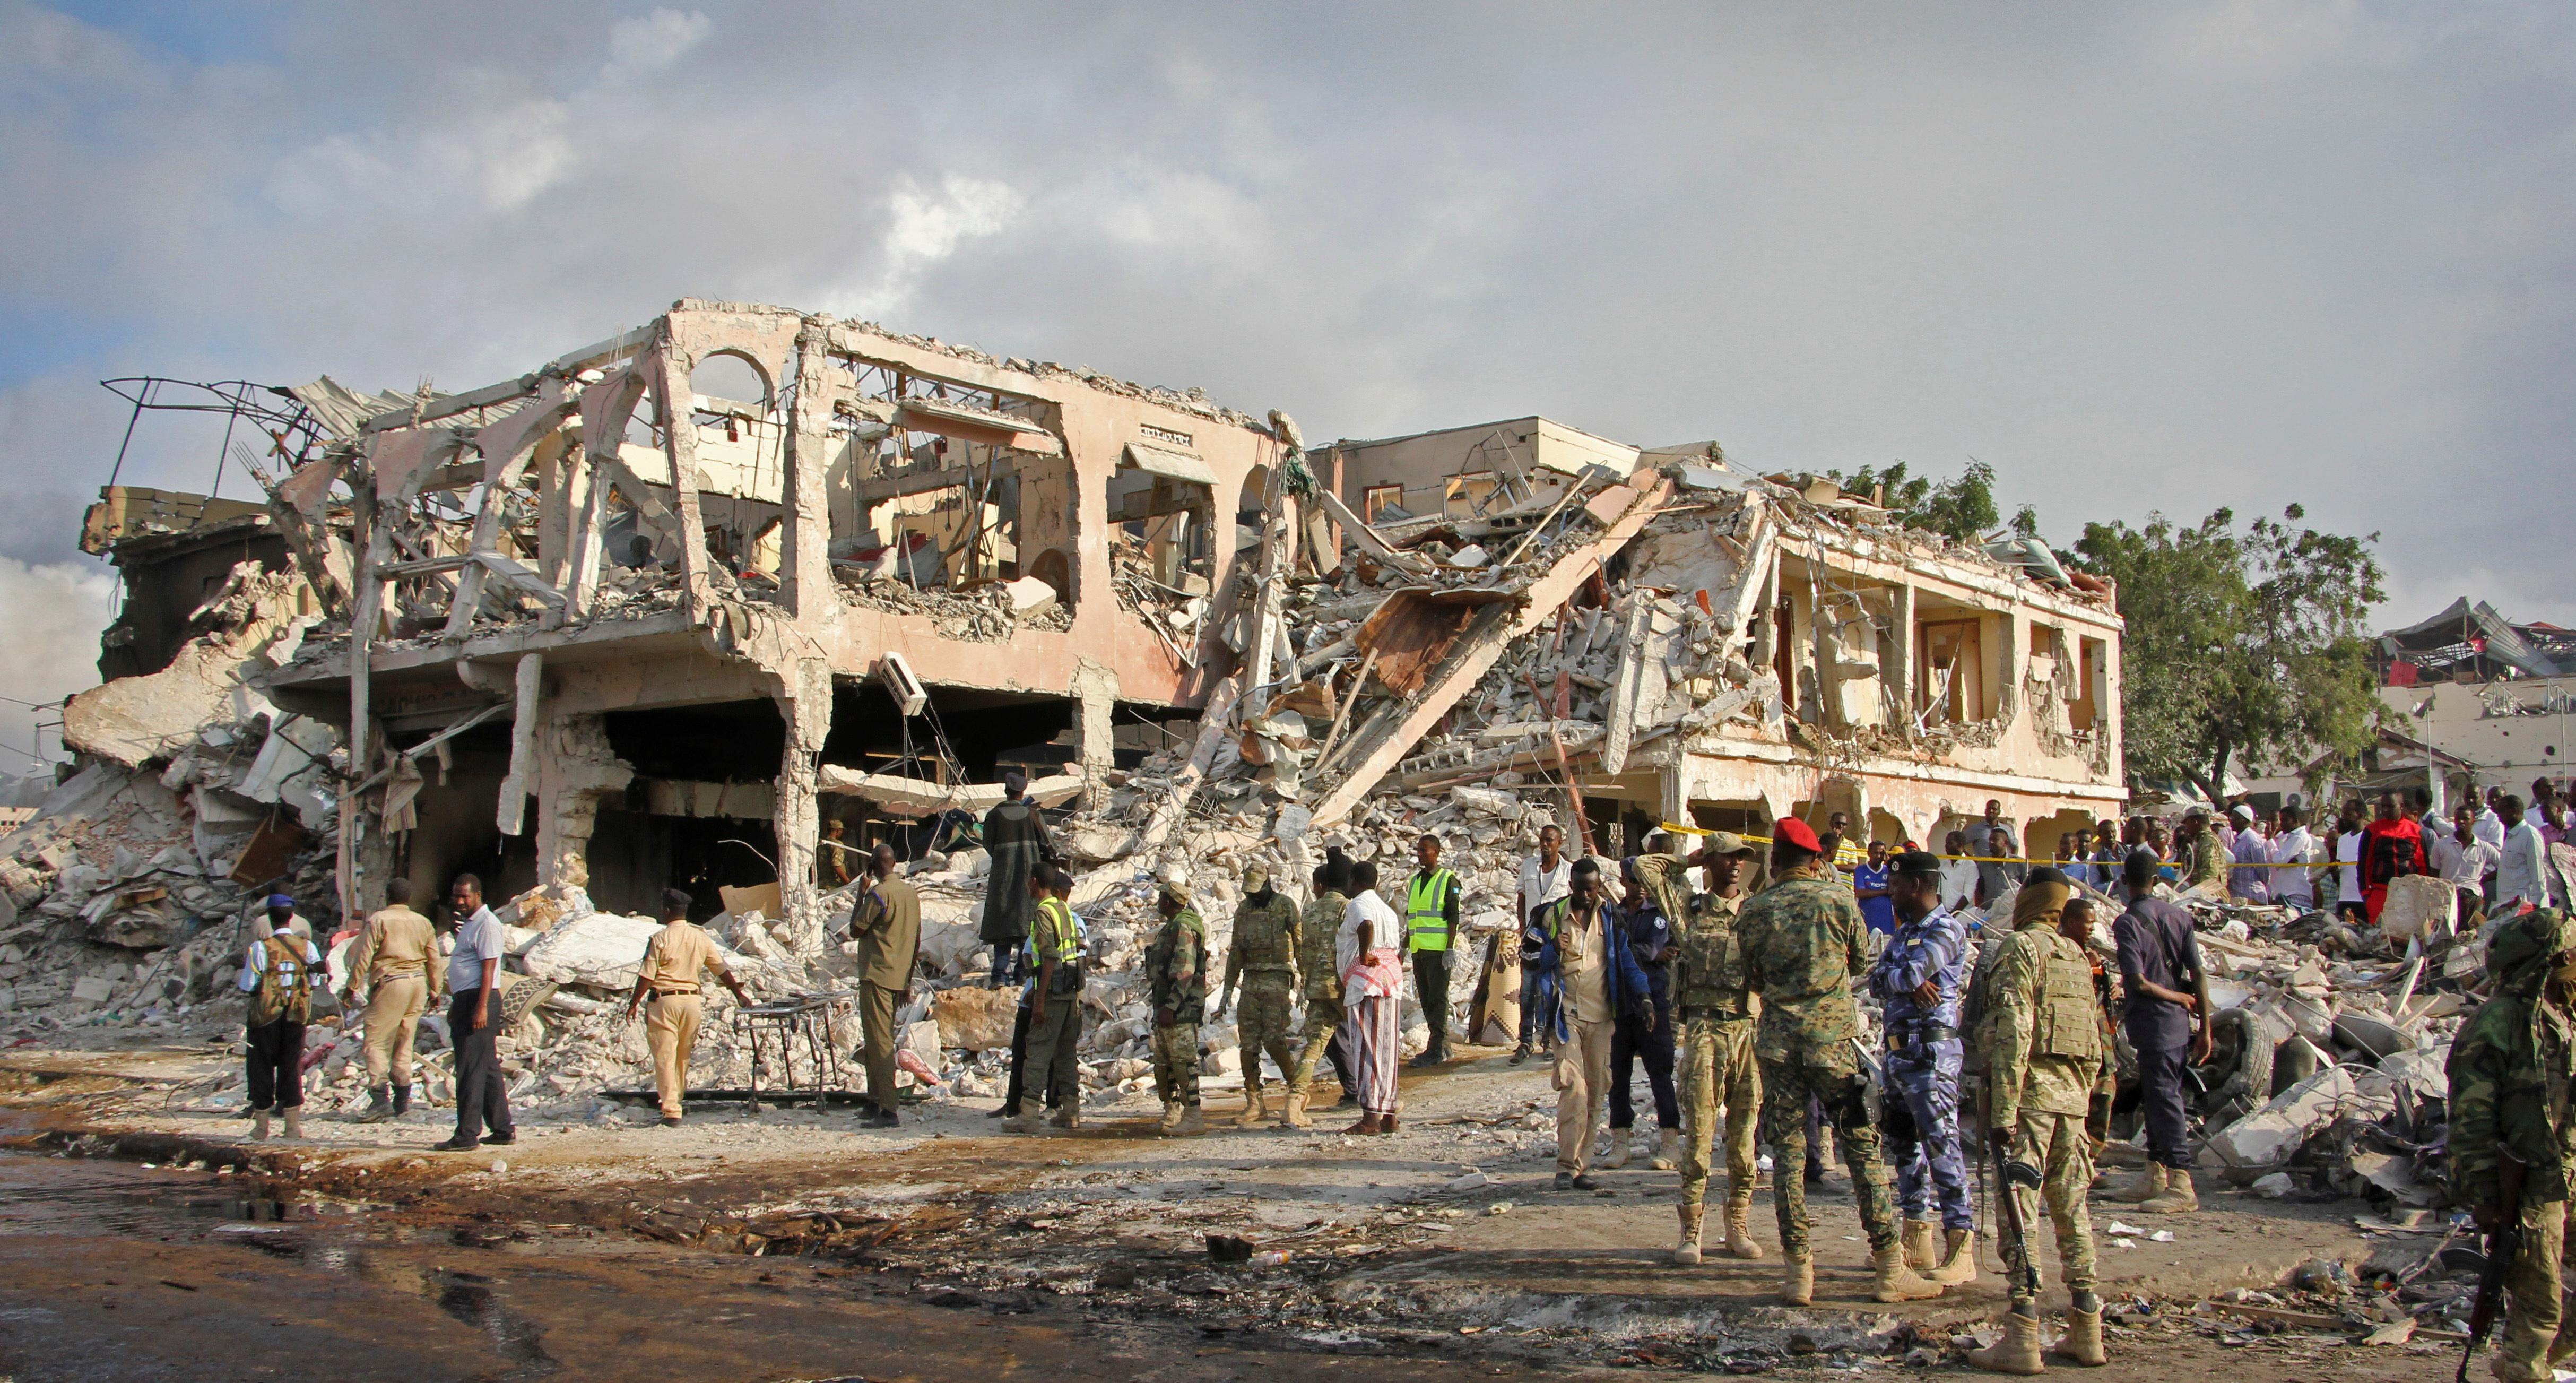 Somali security forces and others gather and search for bodies near destroyed buildings at the scene of Saturday's blast, in Mogadishu, Somalia Sunday, Oct. 15, 2017. The death toll from the huge truck bomb blast in Somalia's capital rose to over 50 Sunday, with more than 60 others injured, as hospitals struggled to cope with the high number of casualties, security and medical sources said. (AP Photo/Farah Abdi Warsameh)